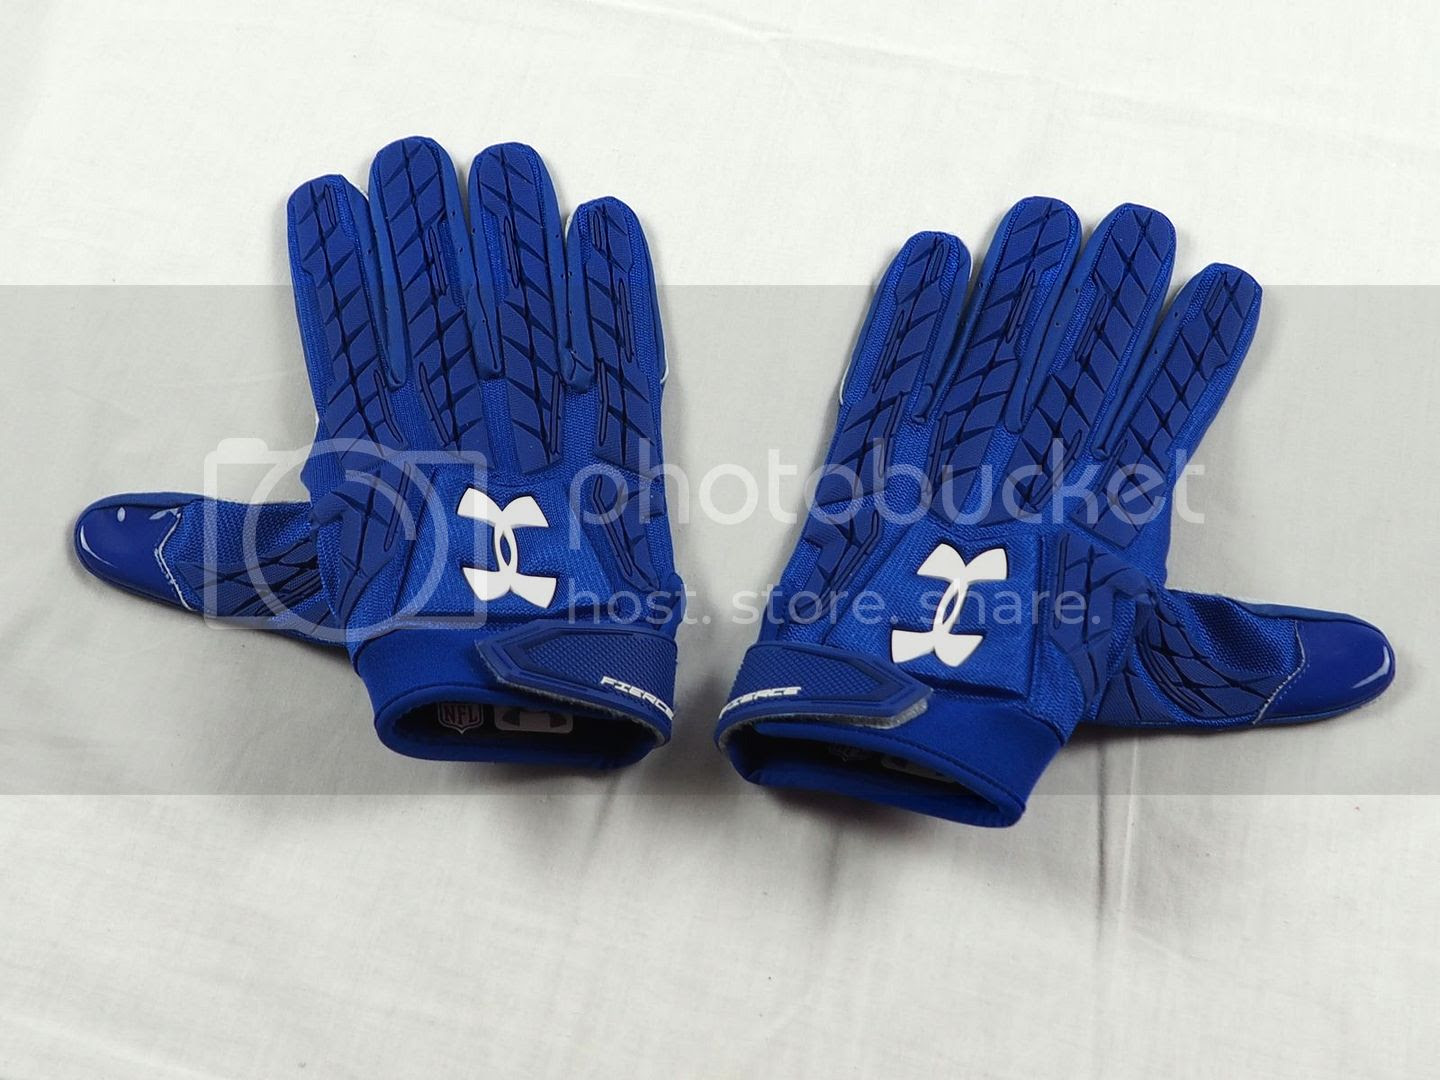 NEW Under Armour Fierce  Blue NFL Receiver Gloves Multiple Sizes  eBay